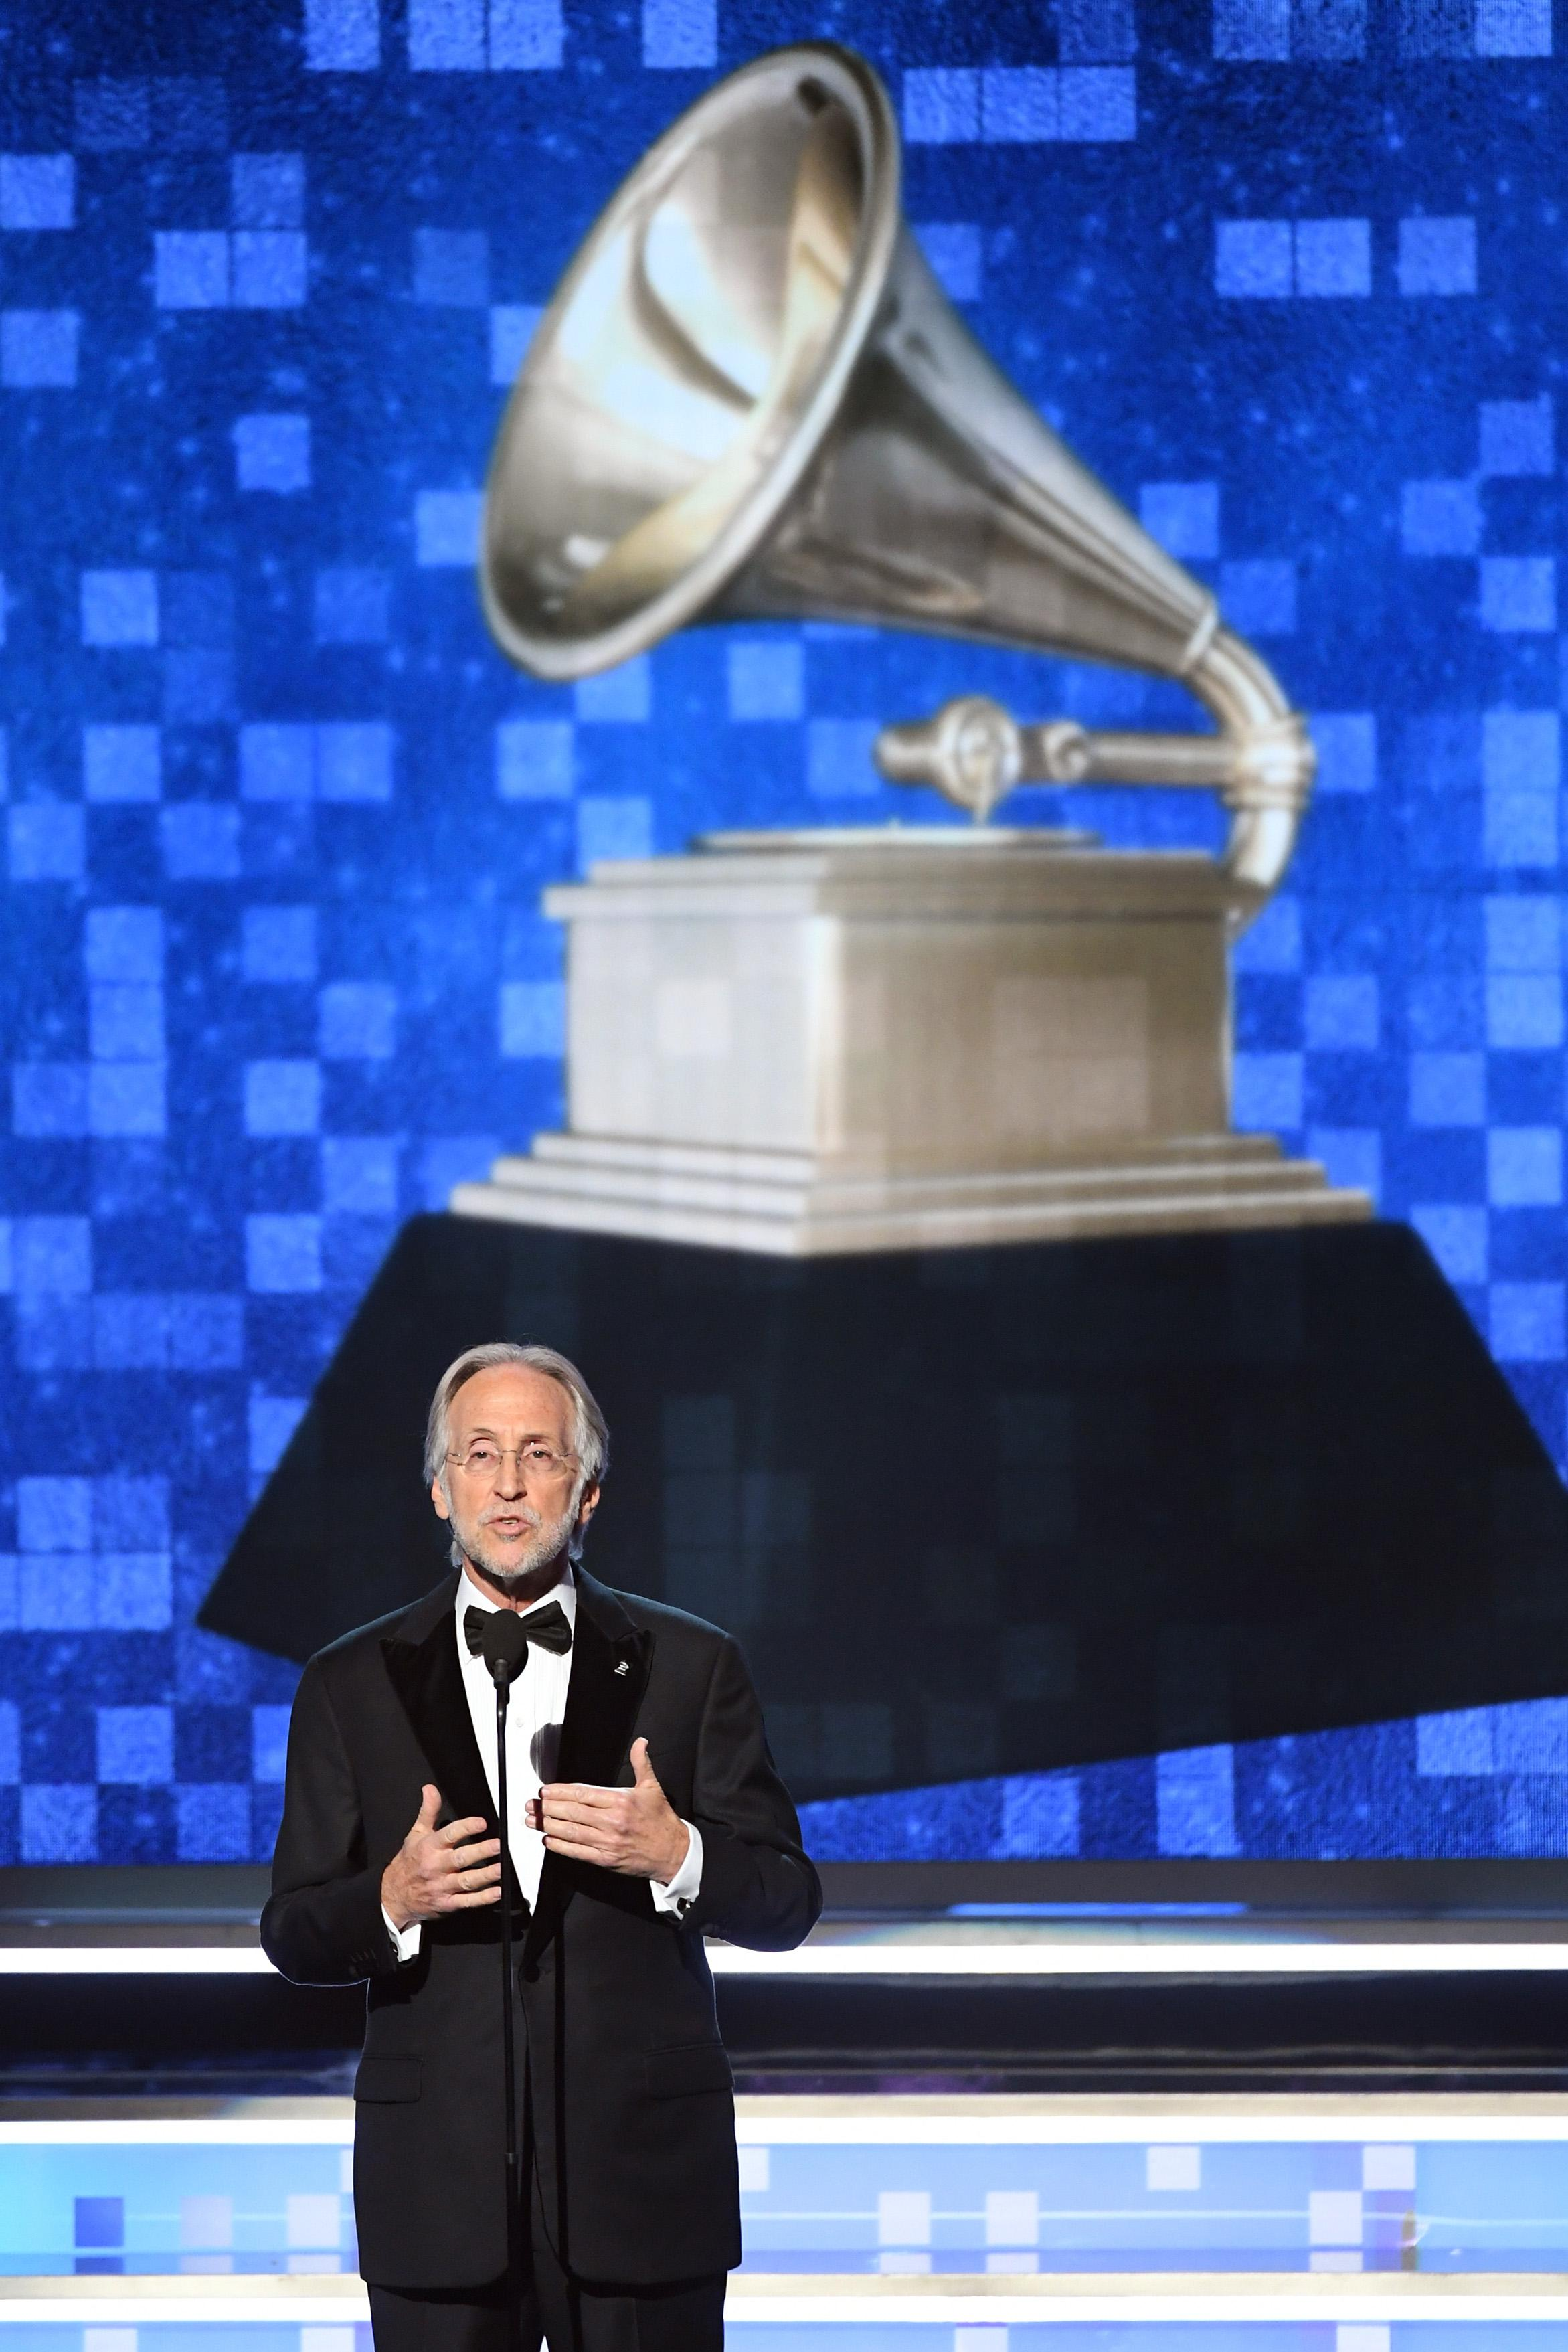 President and CEO of The Recording Academy Neil Portnow speaks onstage during the 61st Annual GRAMMY Awards at Staples Center on February 10, 2019 in Los Angeles, California.  (Photo by Kevin Winter/Getty Images for The Recording Academy)